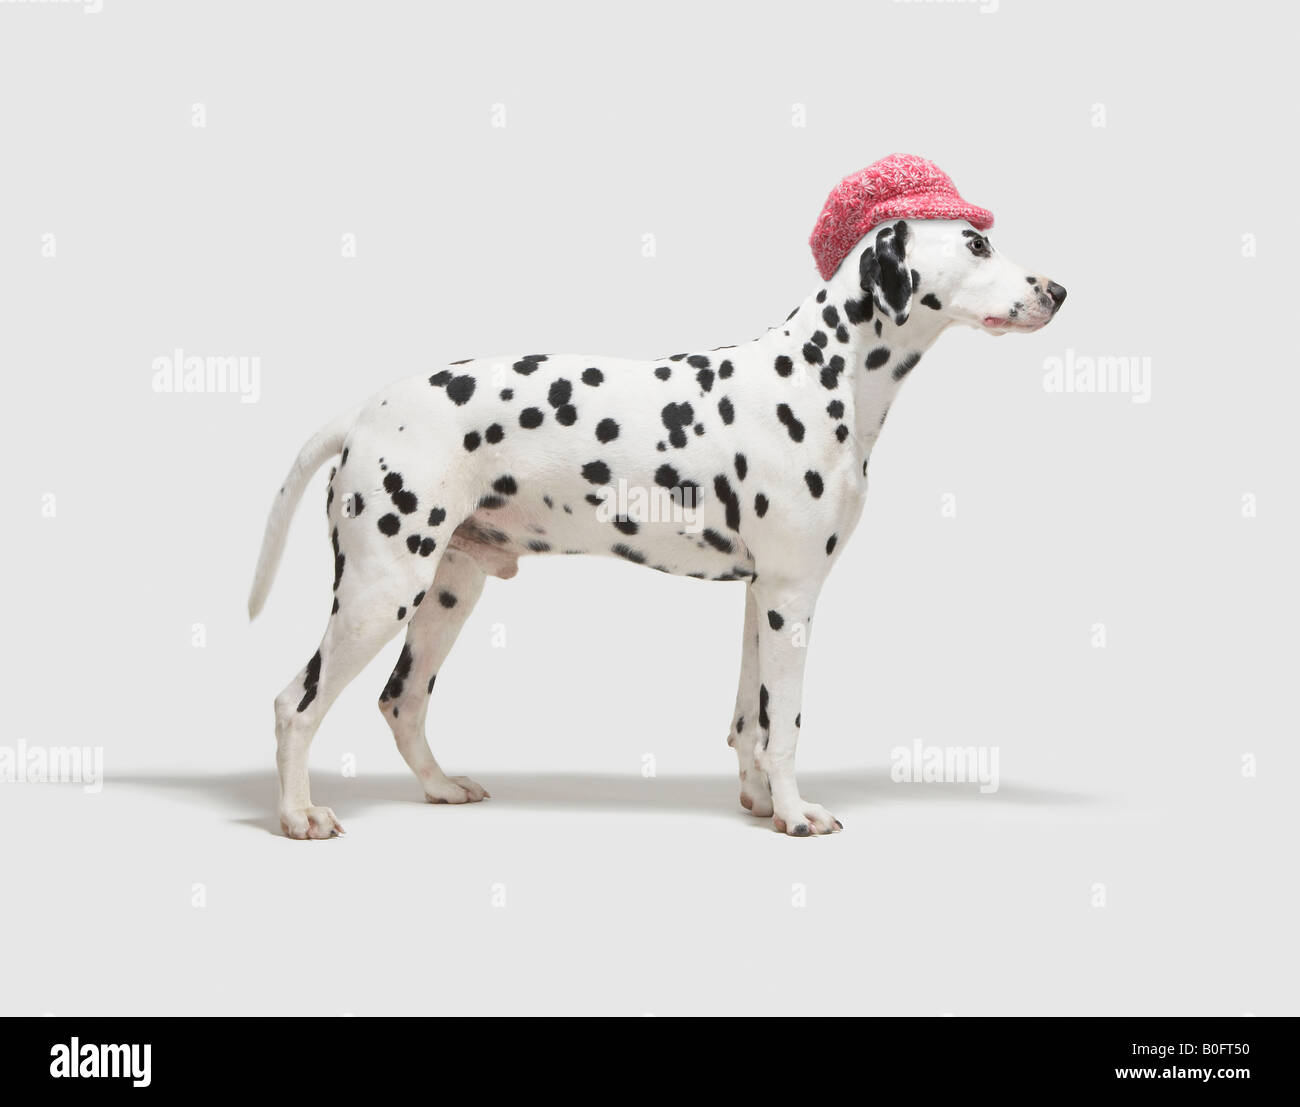 Dog wearing a hat - Stock Image